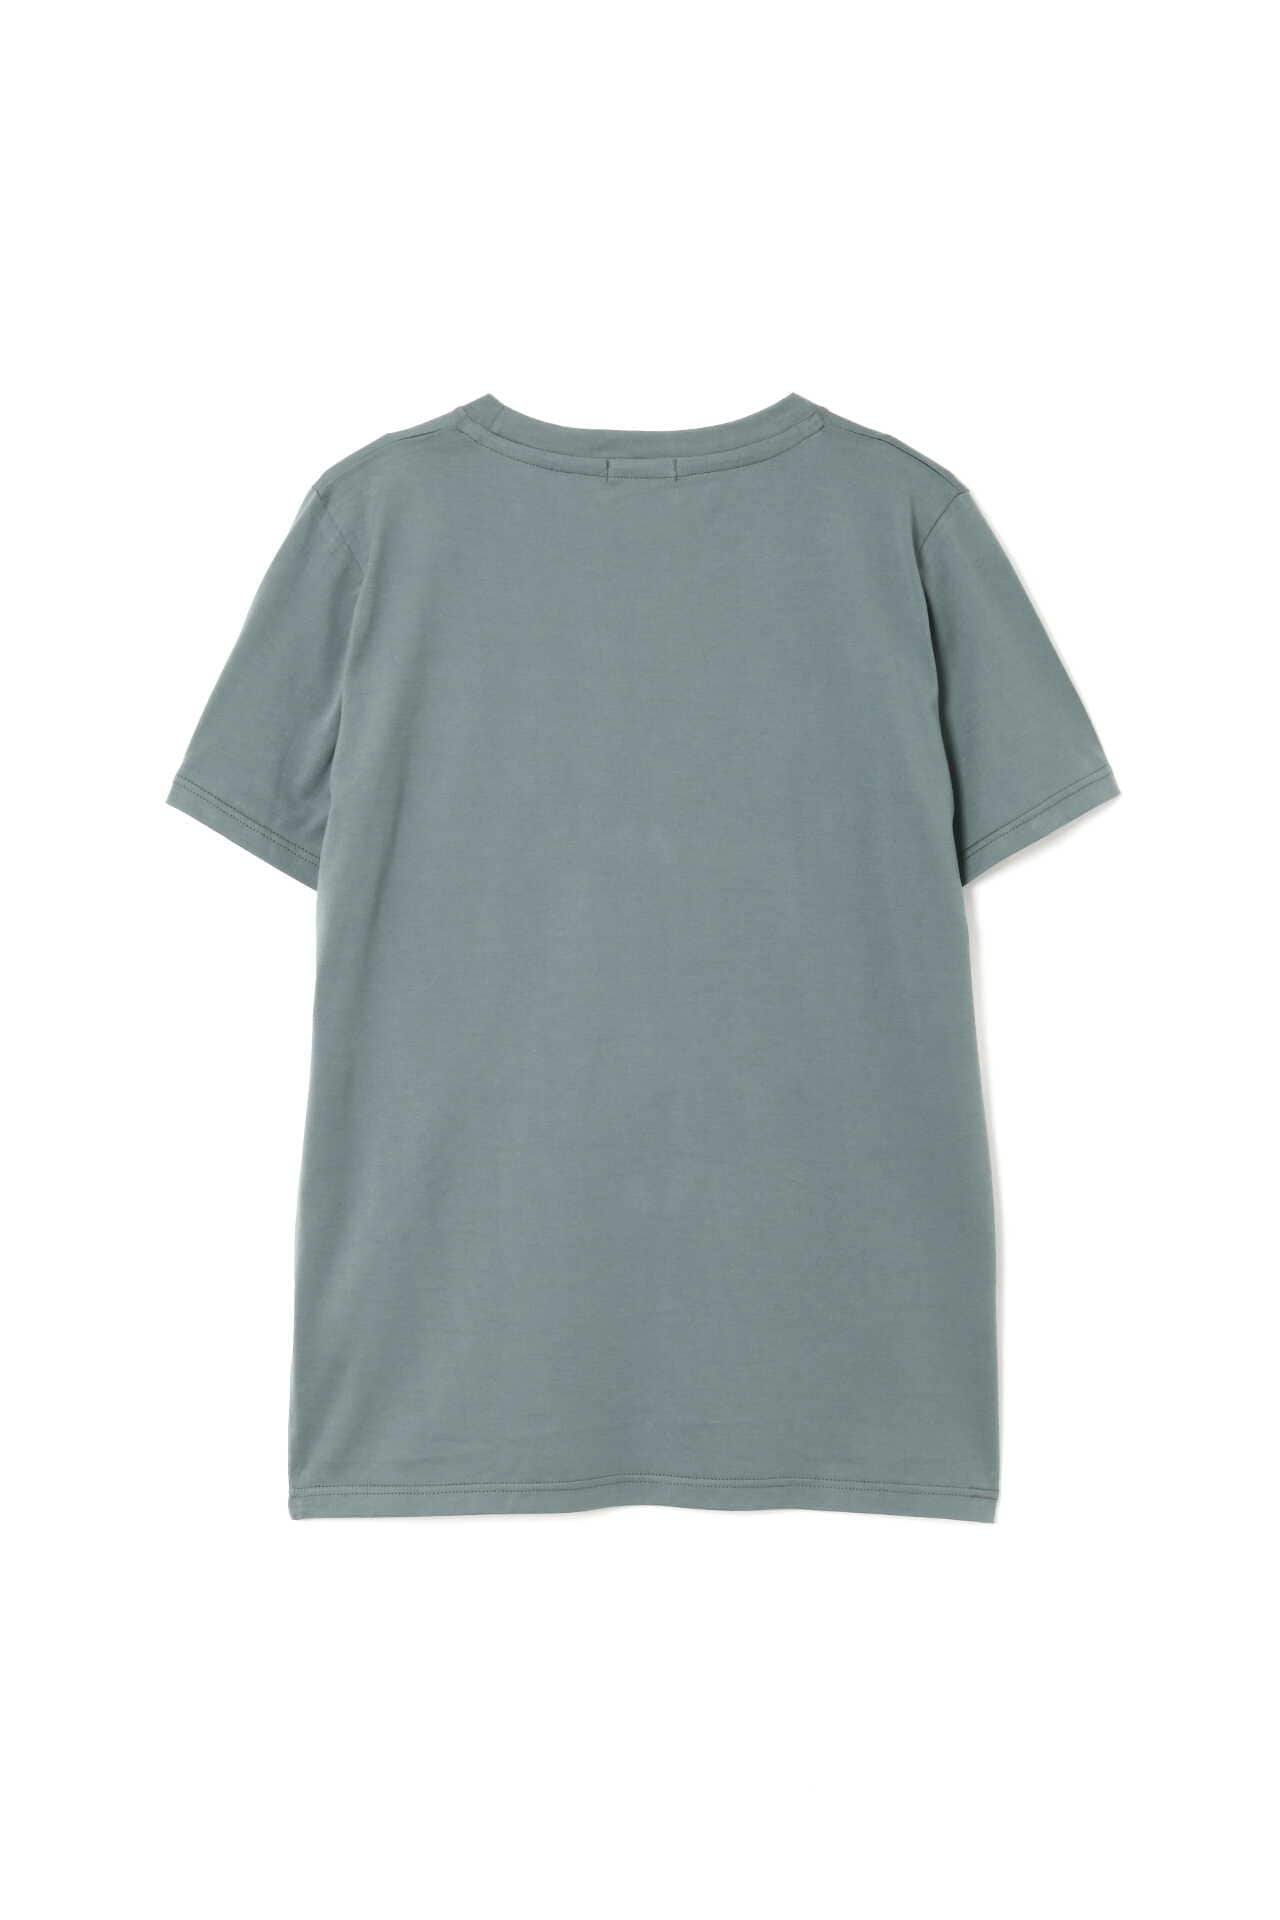 SUPERFINE COTTON JERSEY11